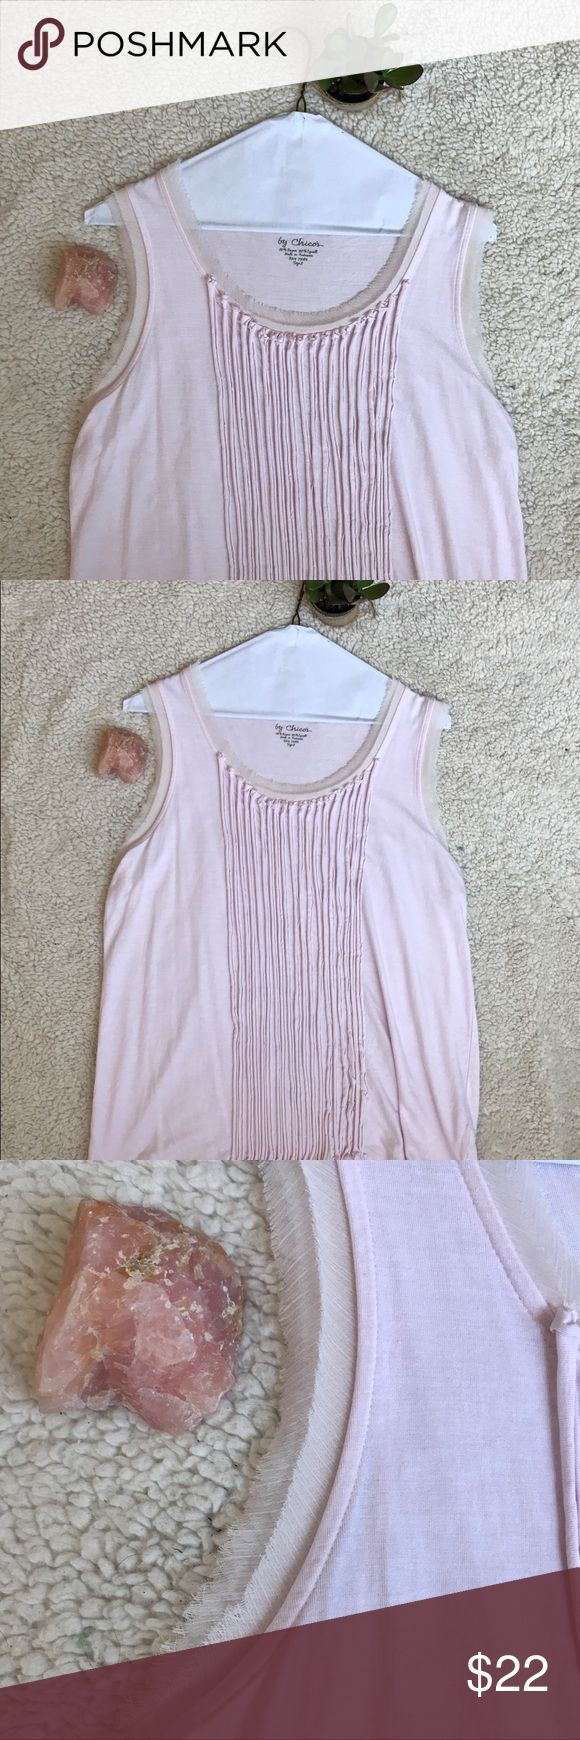 Chicos Large Pink tank top fringe women's Chicos Large pink tank top, fringe, flowy, summer, stylish, baby pink, •All items bought come with a gift🌸💕 Chico's Tops Tank Tops